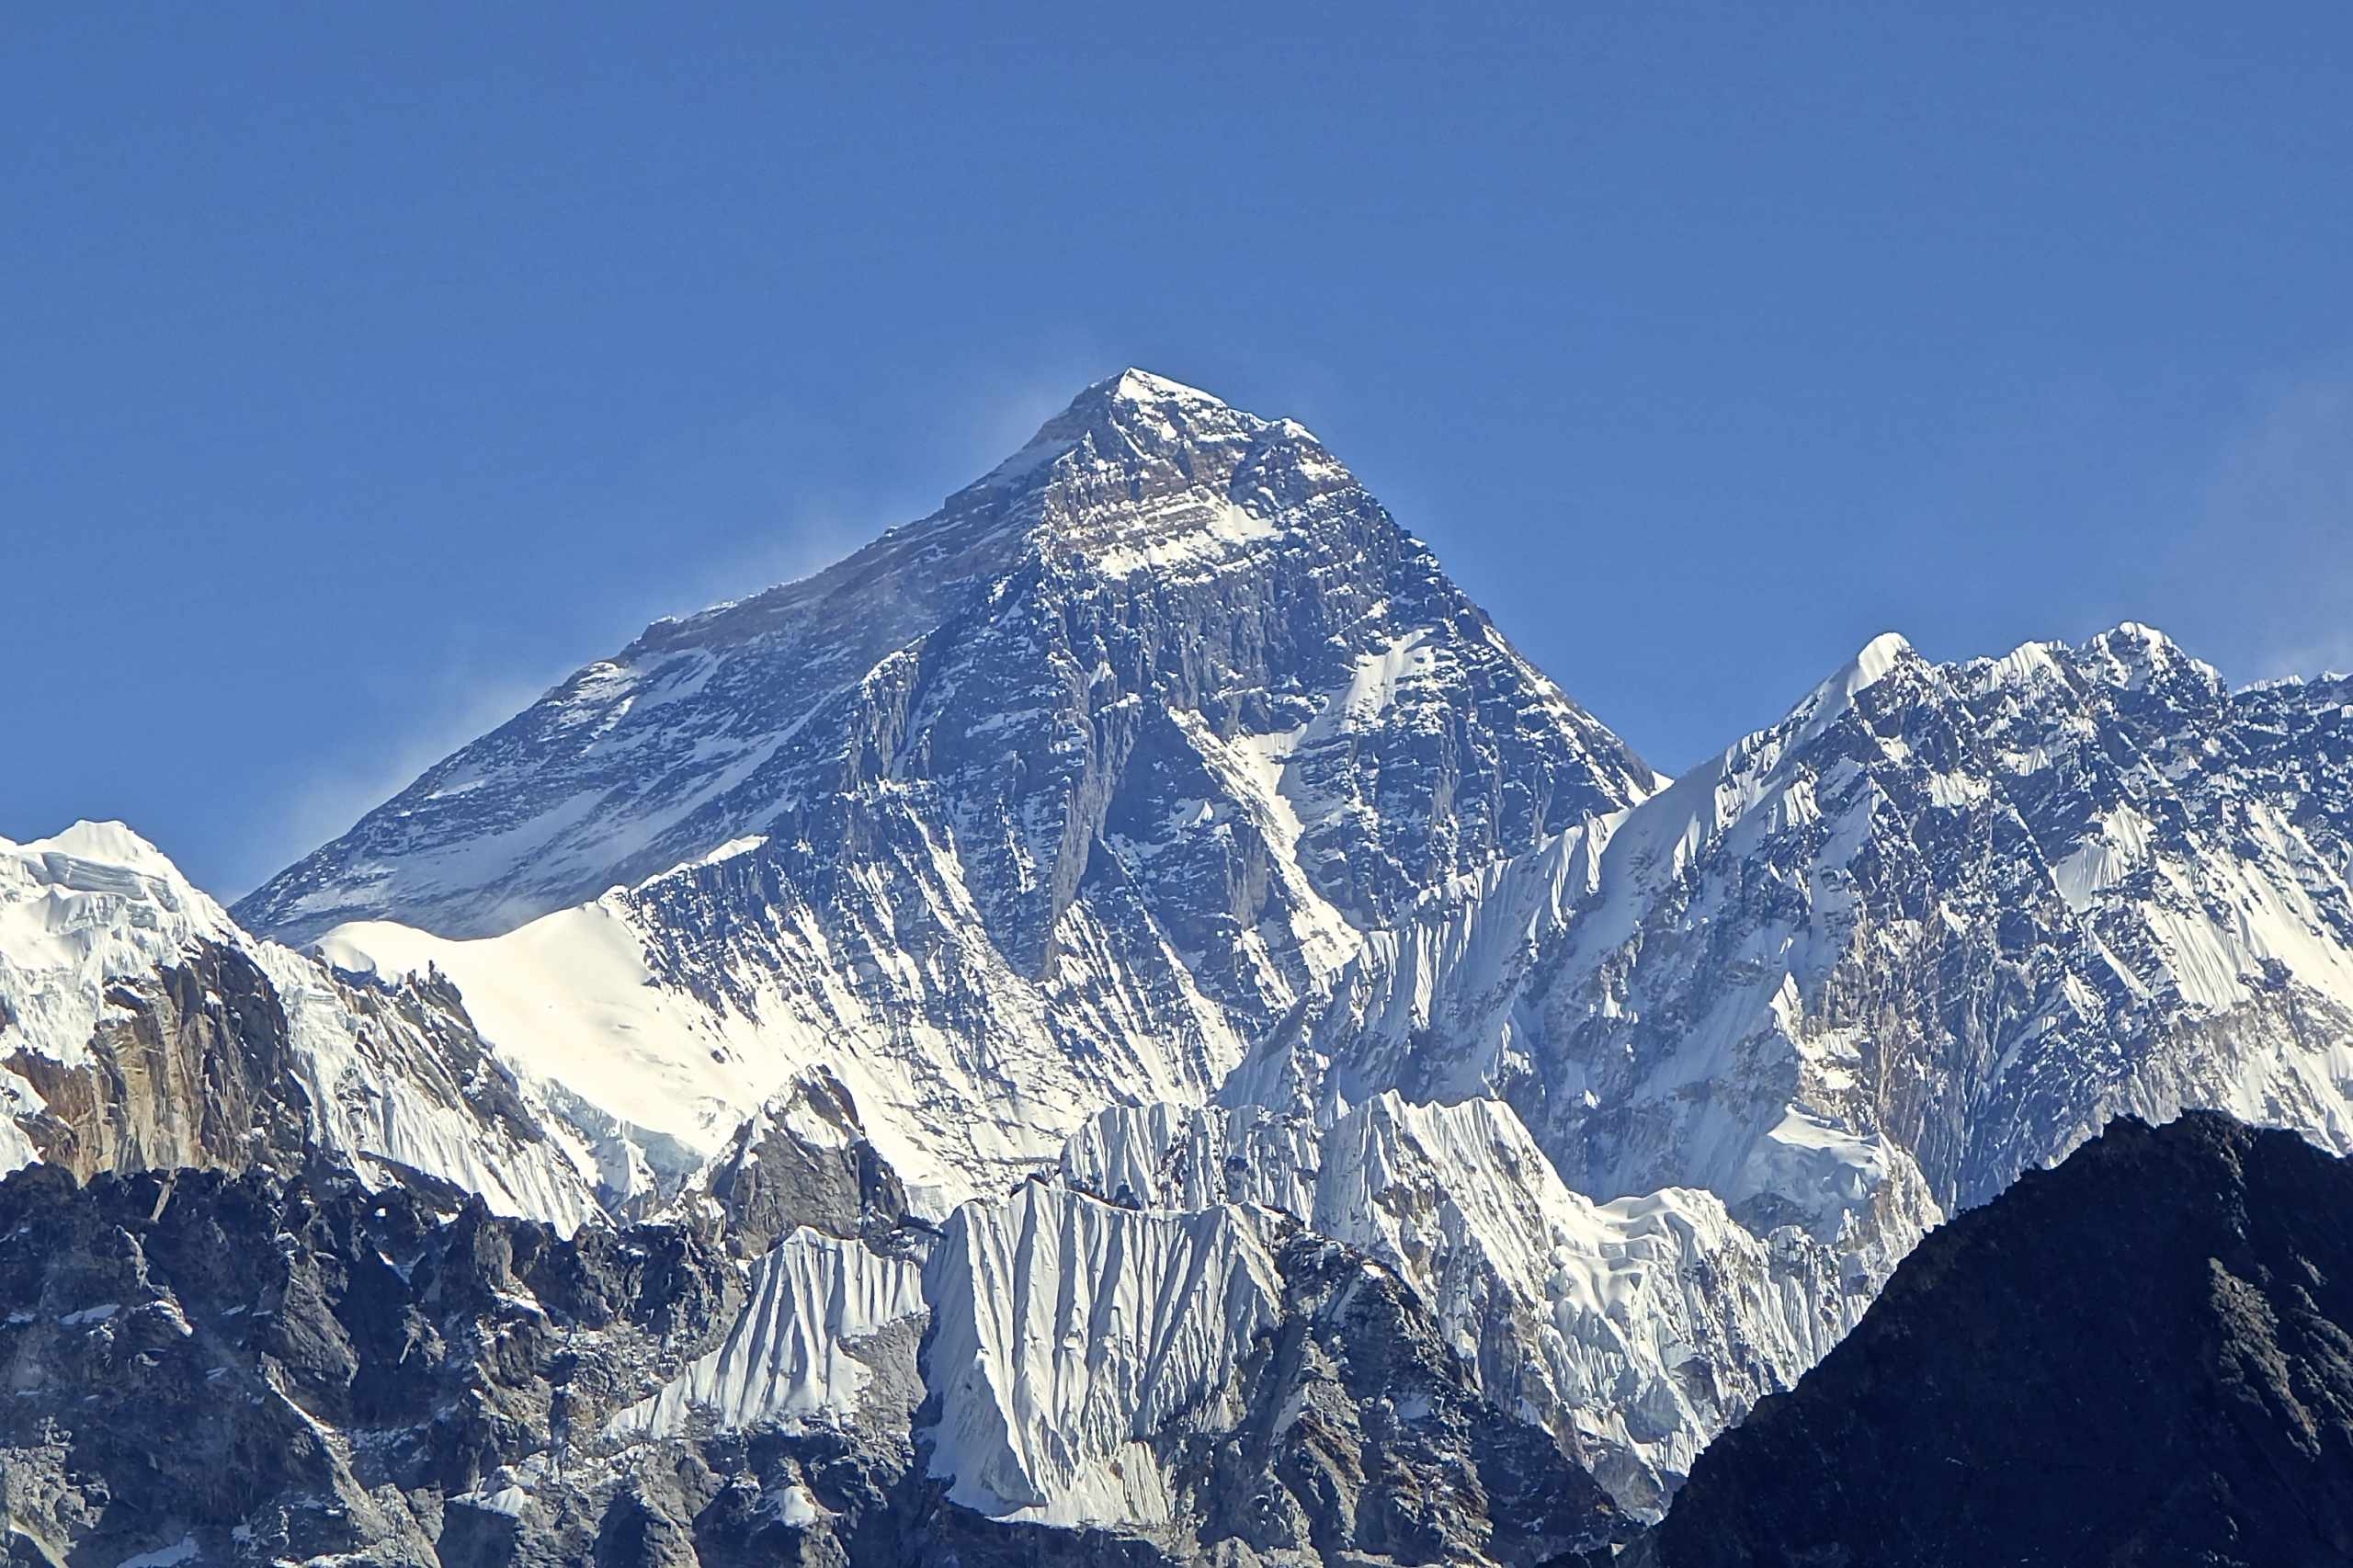 What is the height of Mount Everest